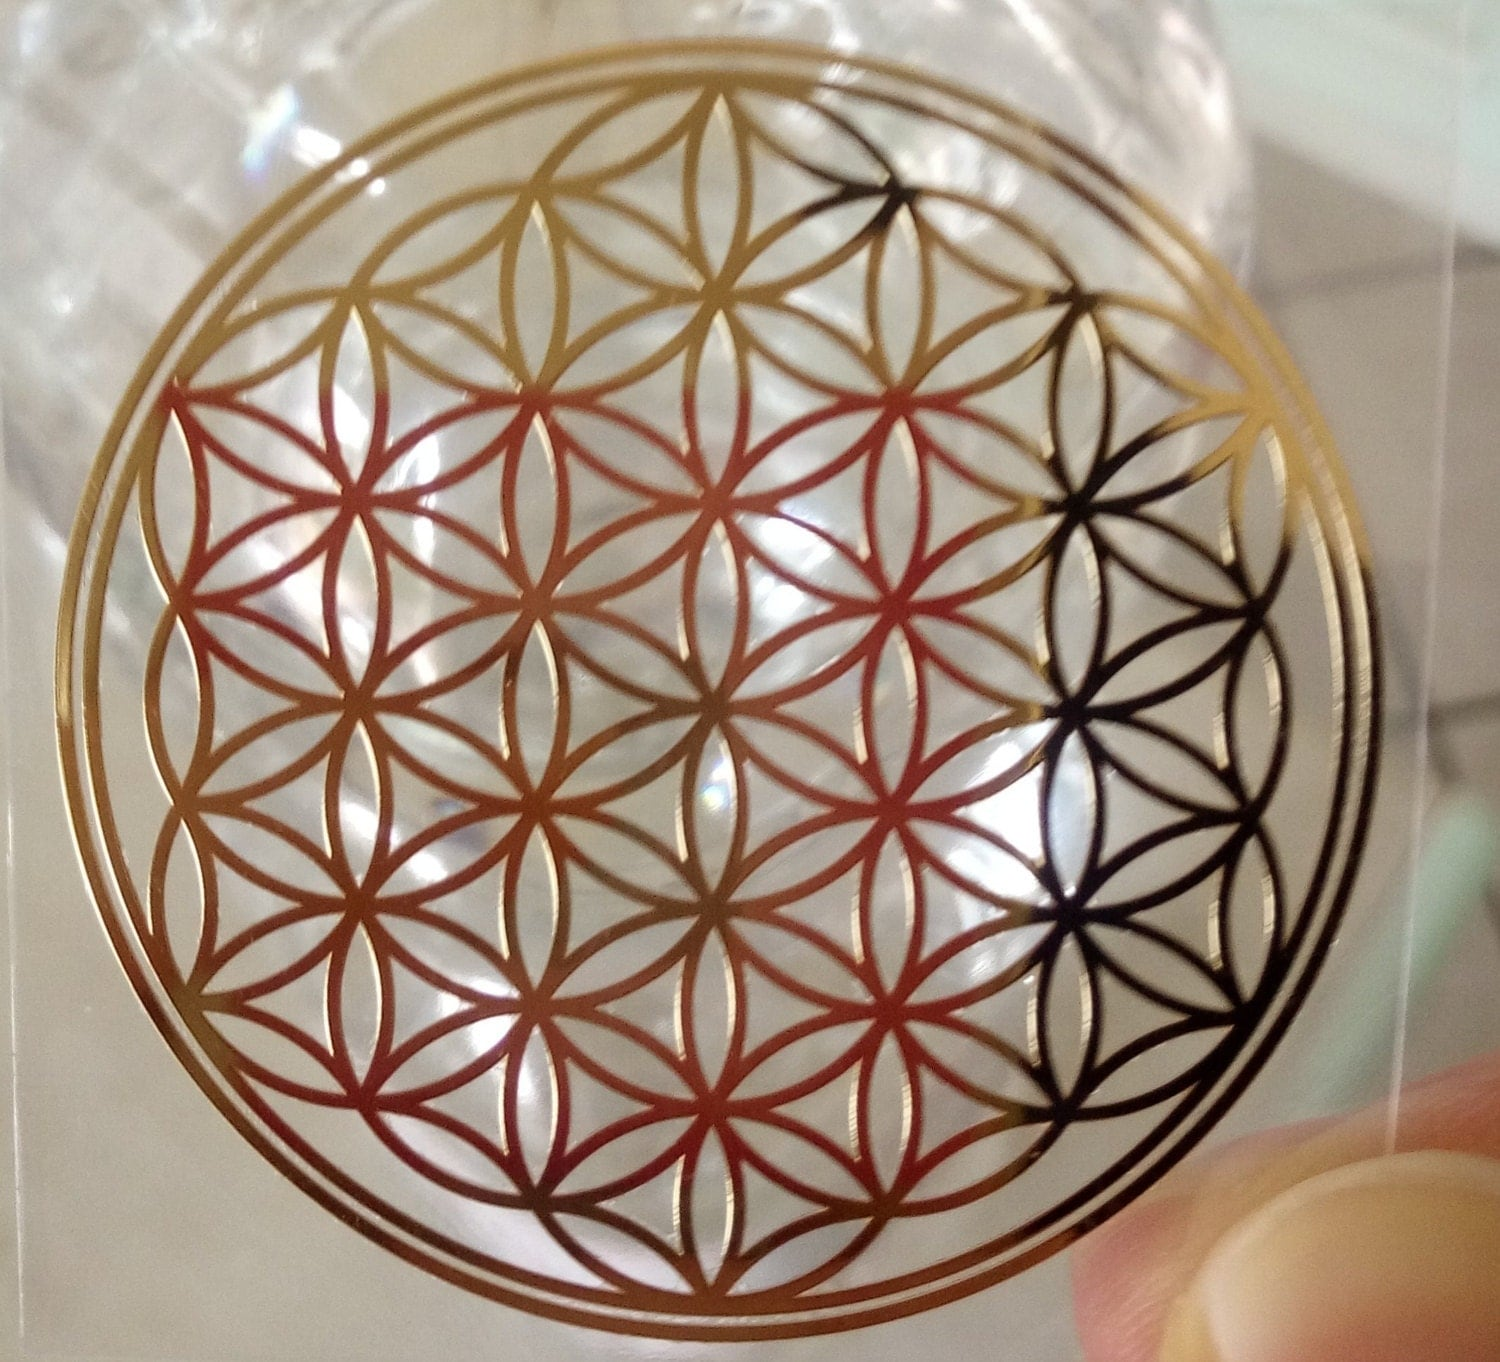 FLOWER of LIFE sticker - beautiful golden sticker. Stick it on your mobile phone cover, computer, fridge, water bottles ecc Sacred Geometry